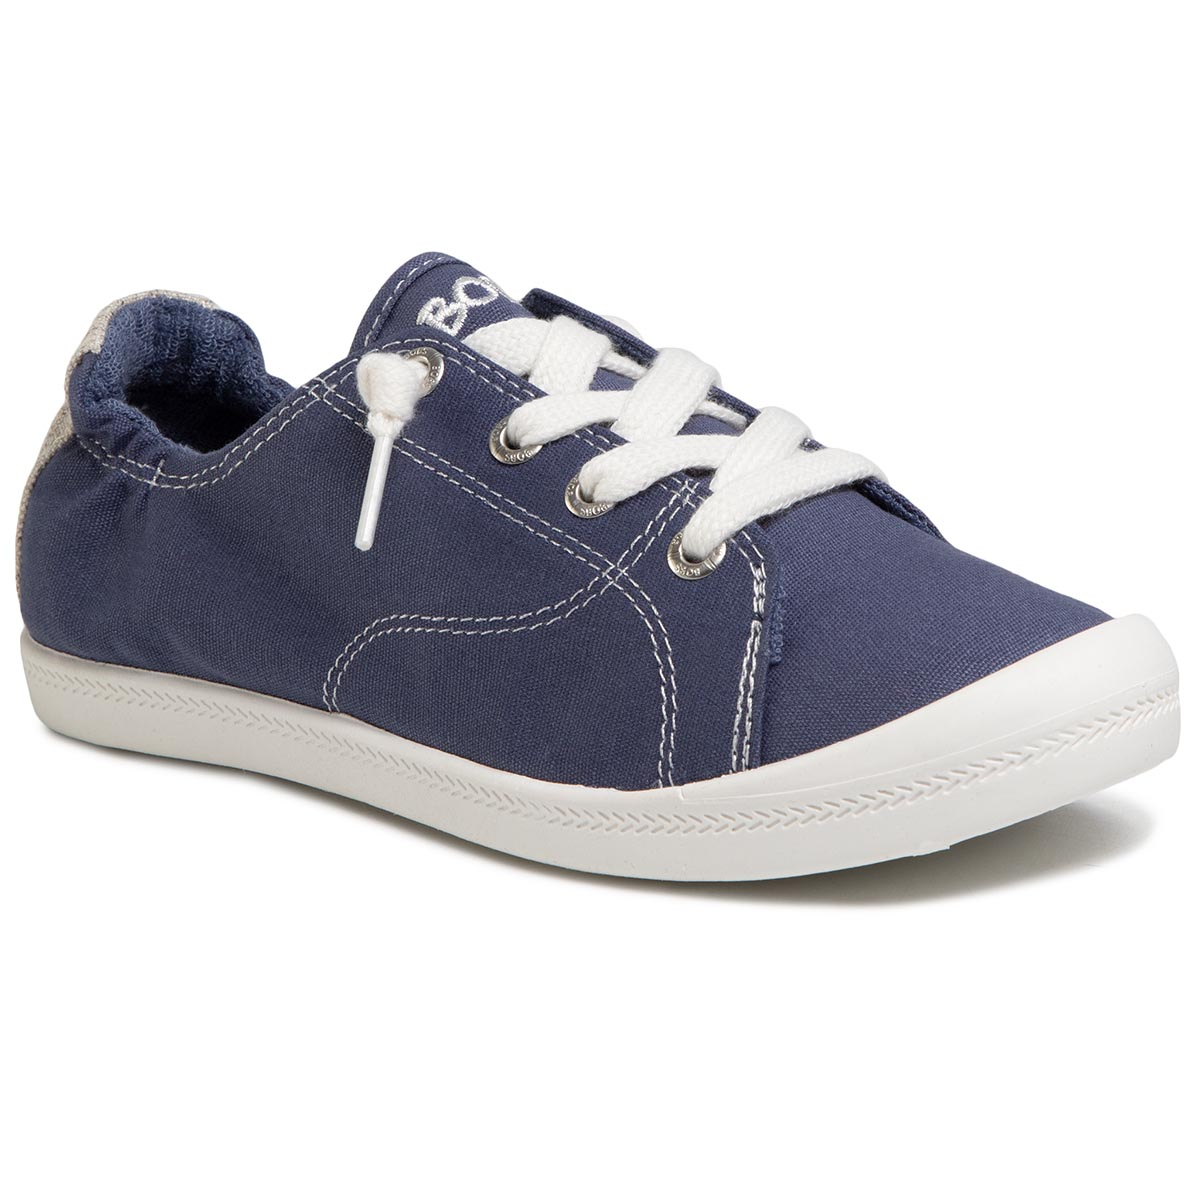 Teniși SKECHERS - Ditch Day 31963/NVY Navy